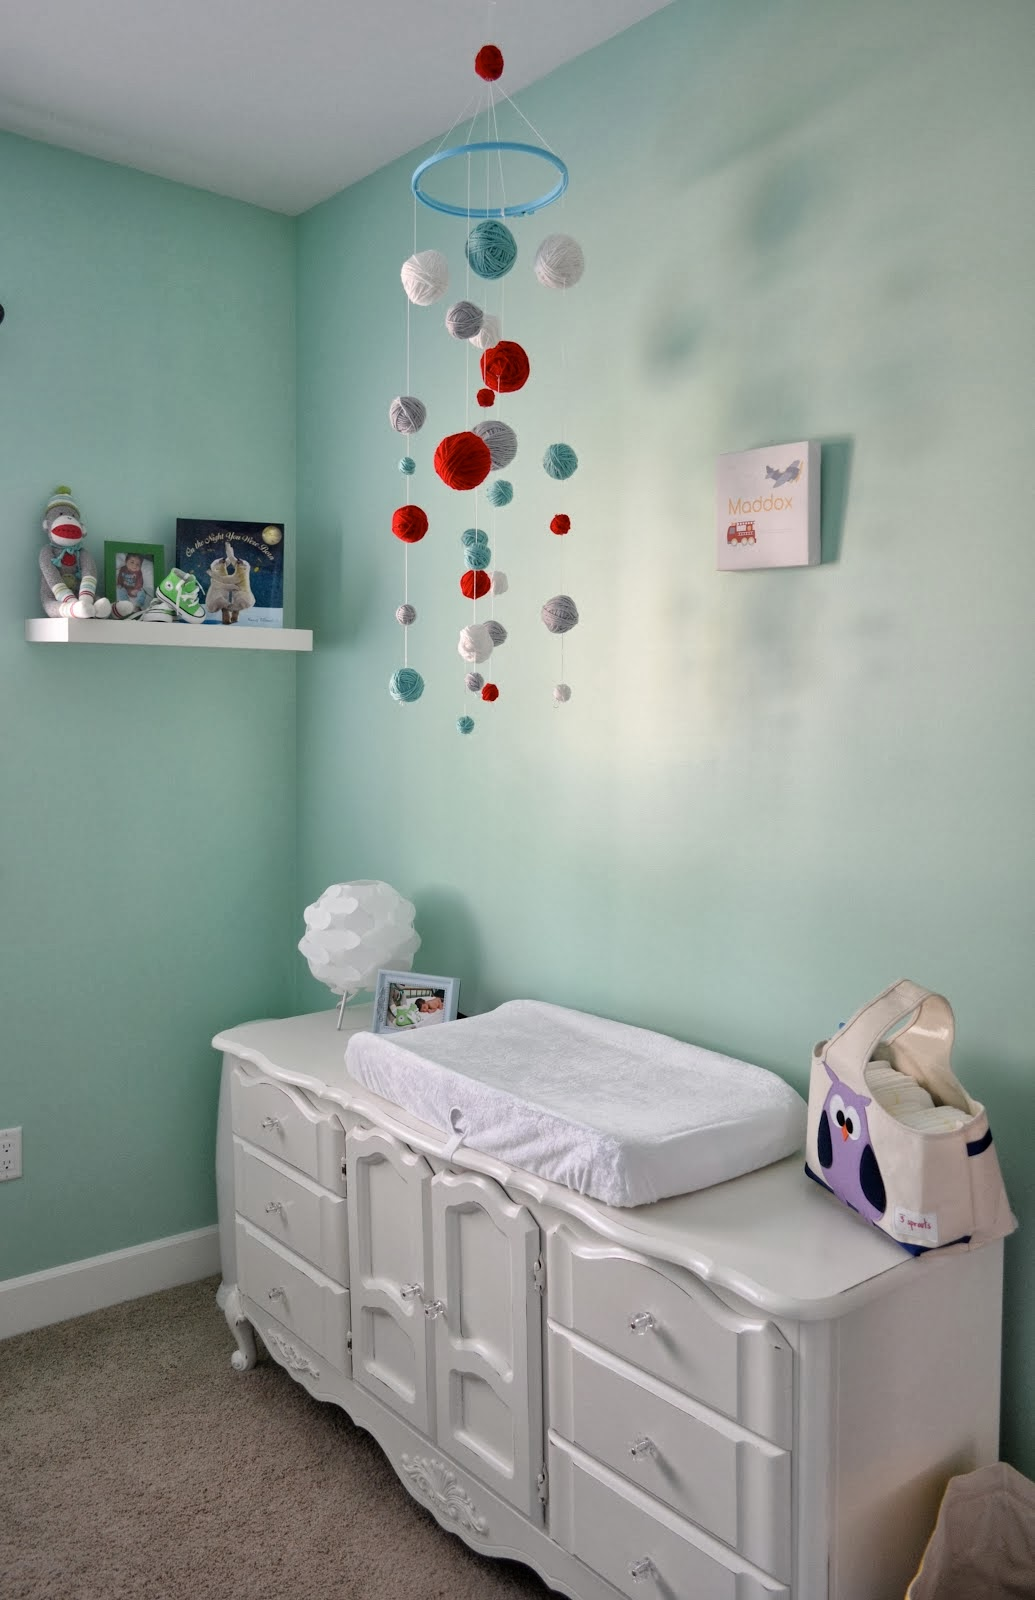 6 homemade baby crib mobiles diy craft projects. Black Bedroom Furniture Sets. Home Design Ideas